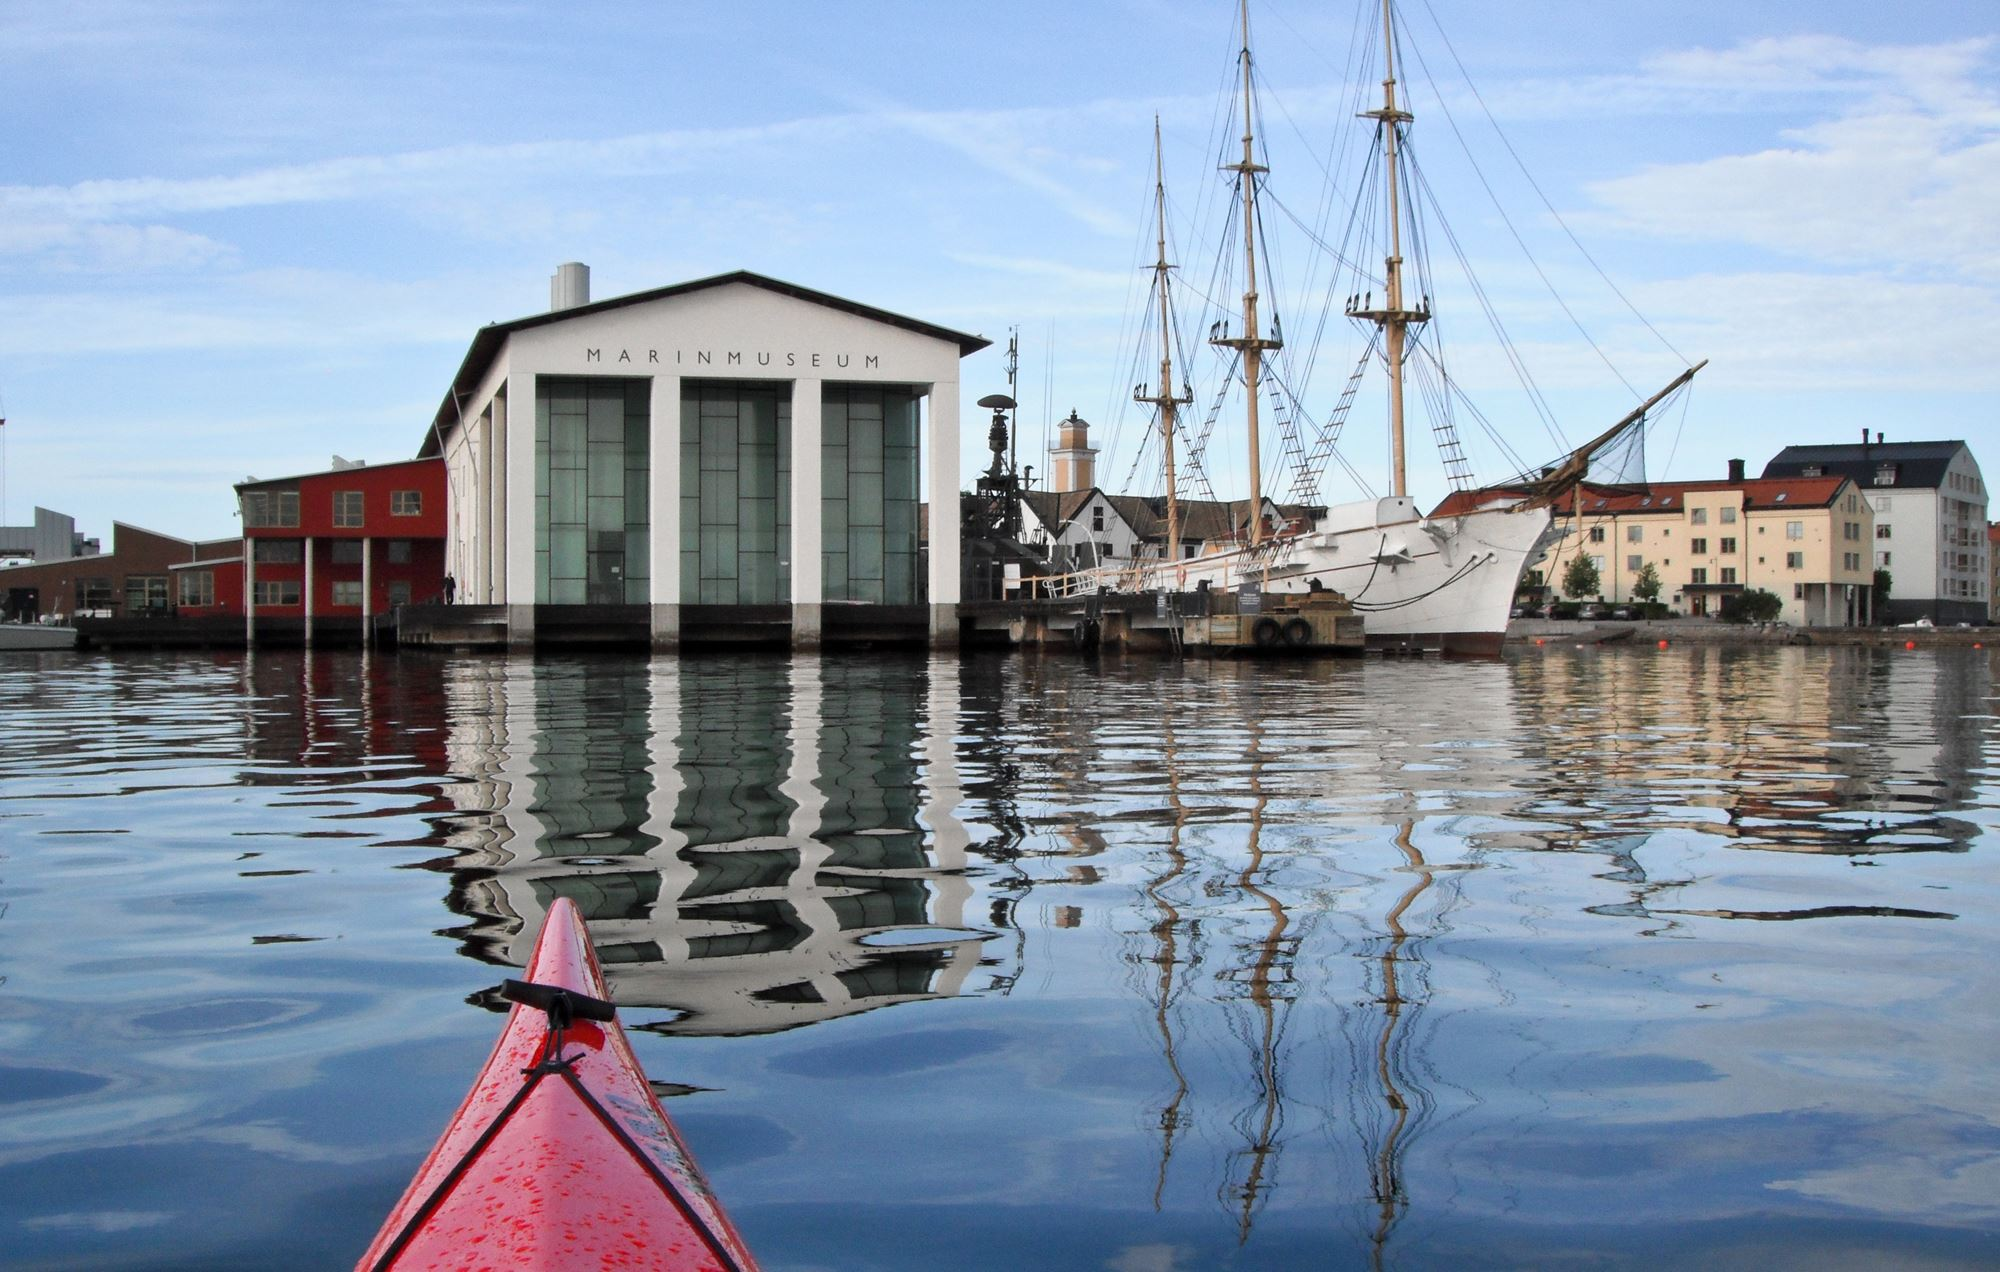 Karlskrona Kajak - Guided tours